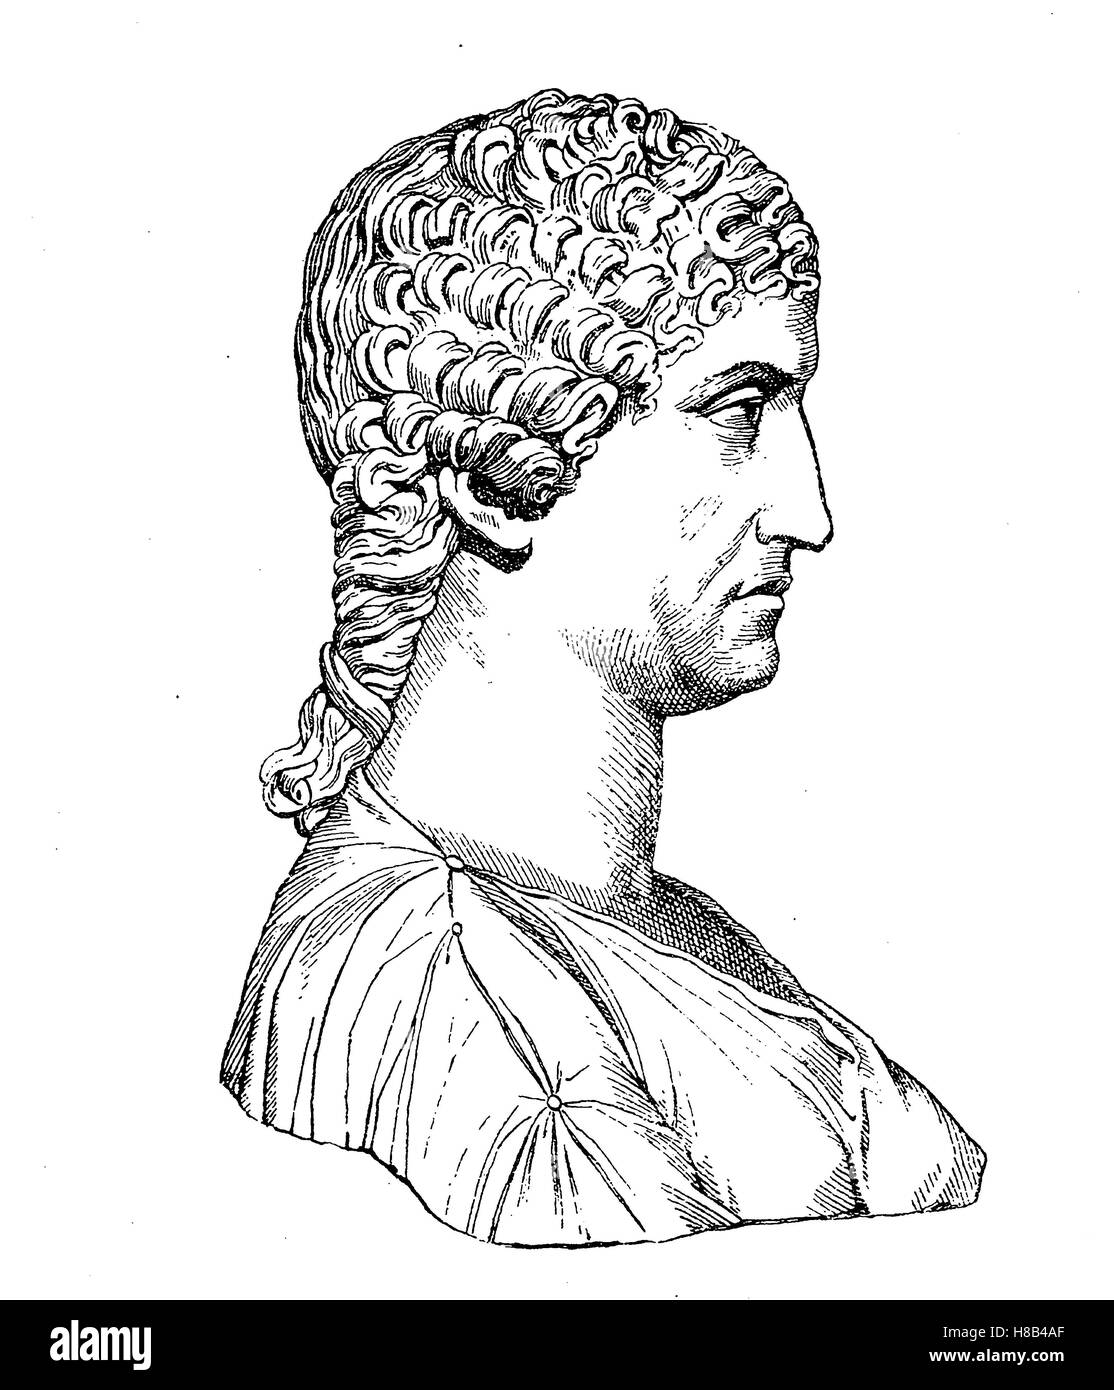 Agrippina the young, consort of the Roman Emperor Claudius, History of fashion, costume story - Stock Image